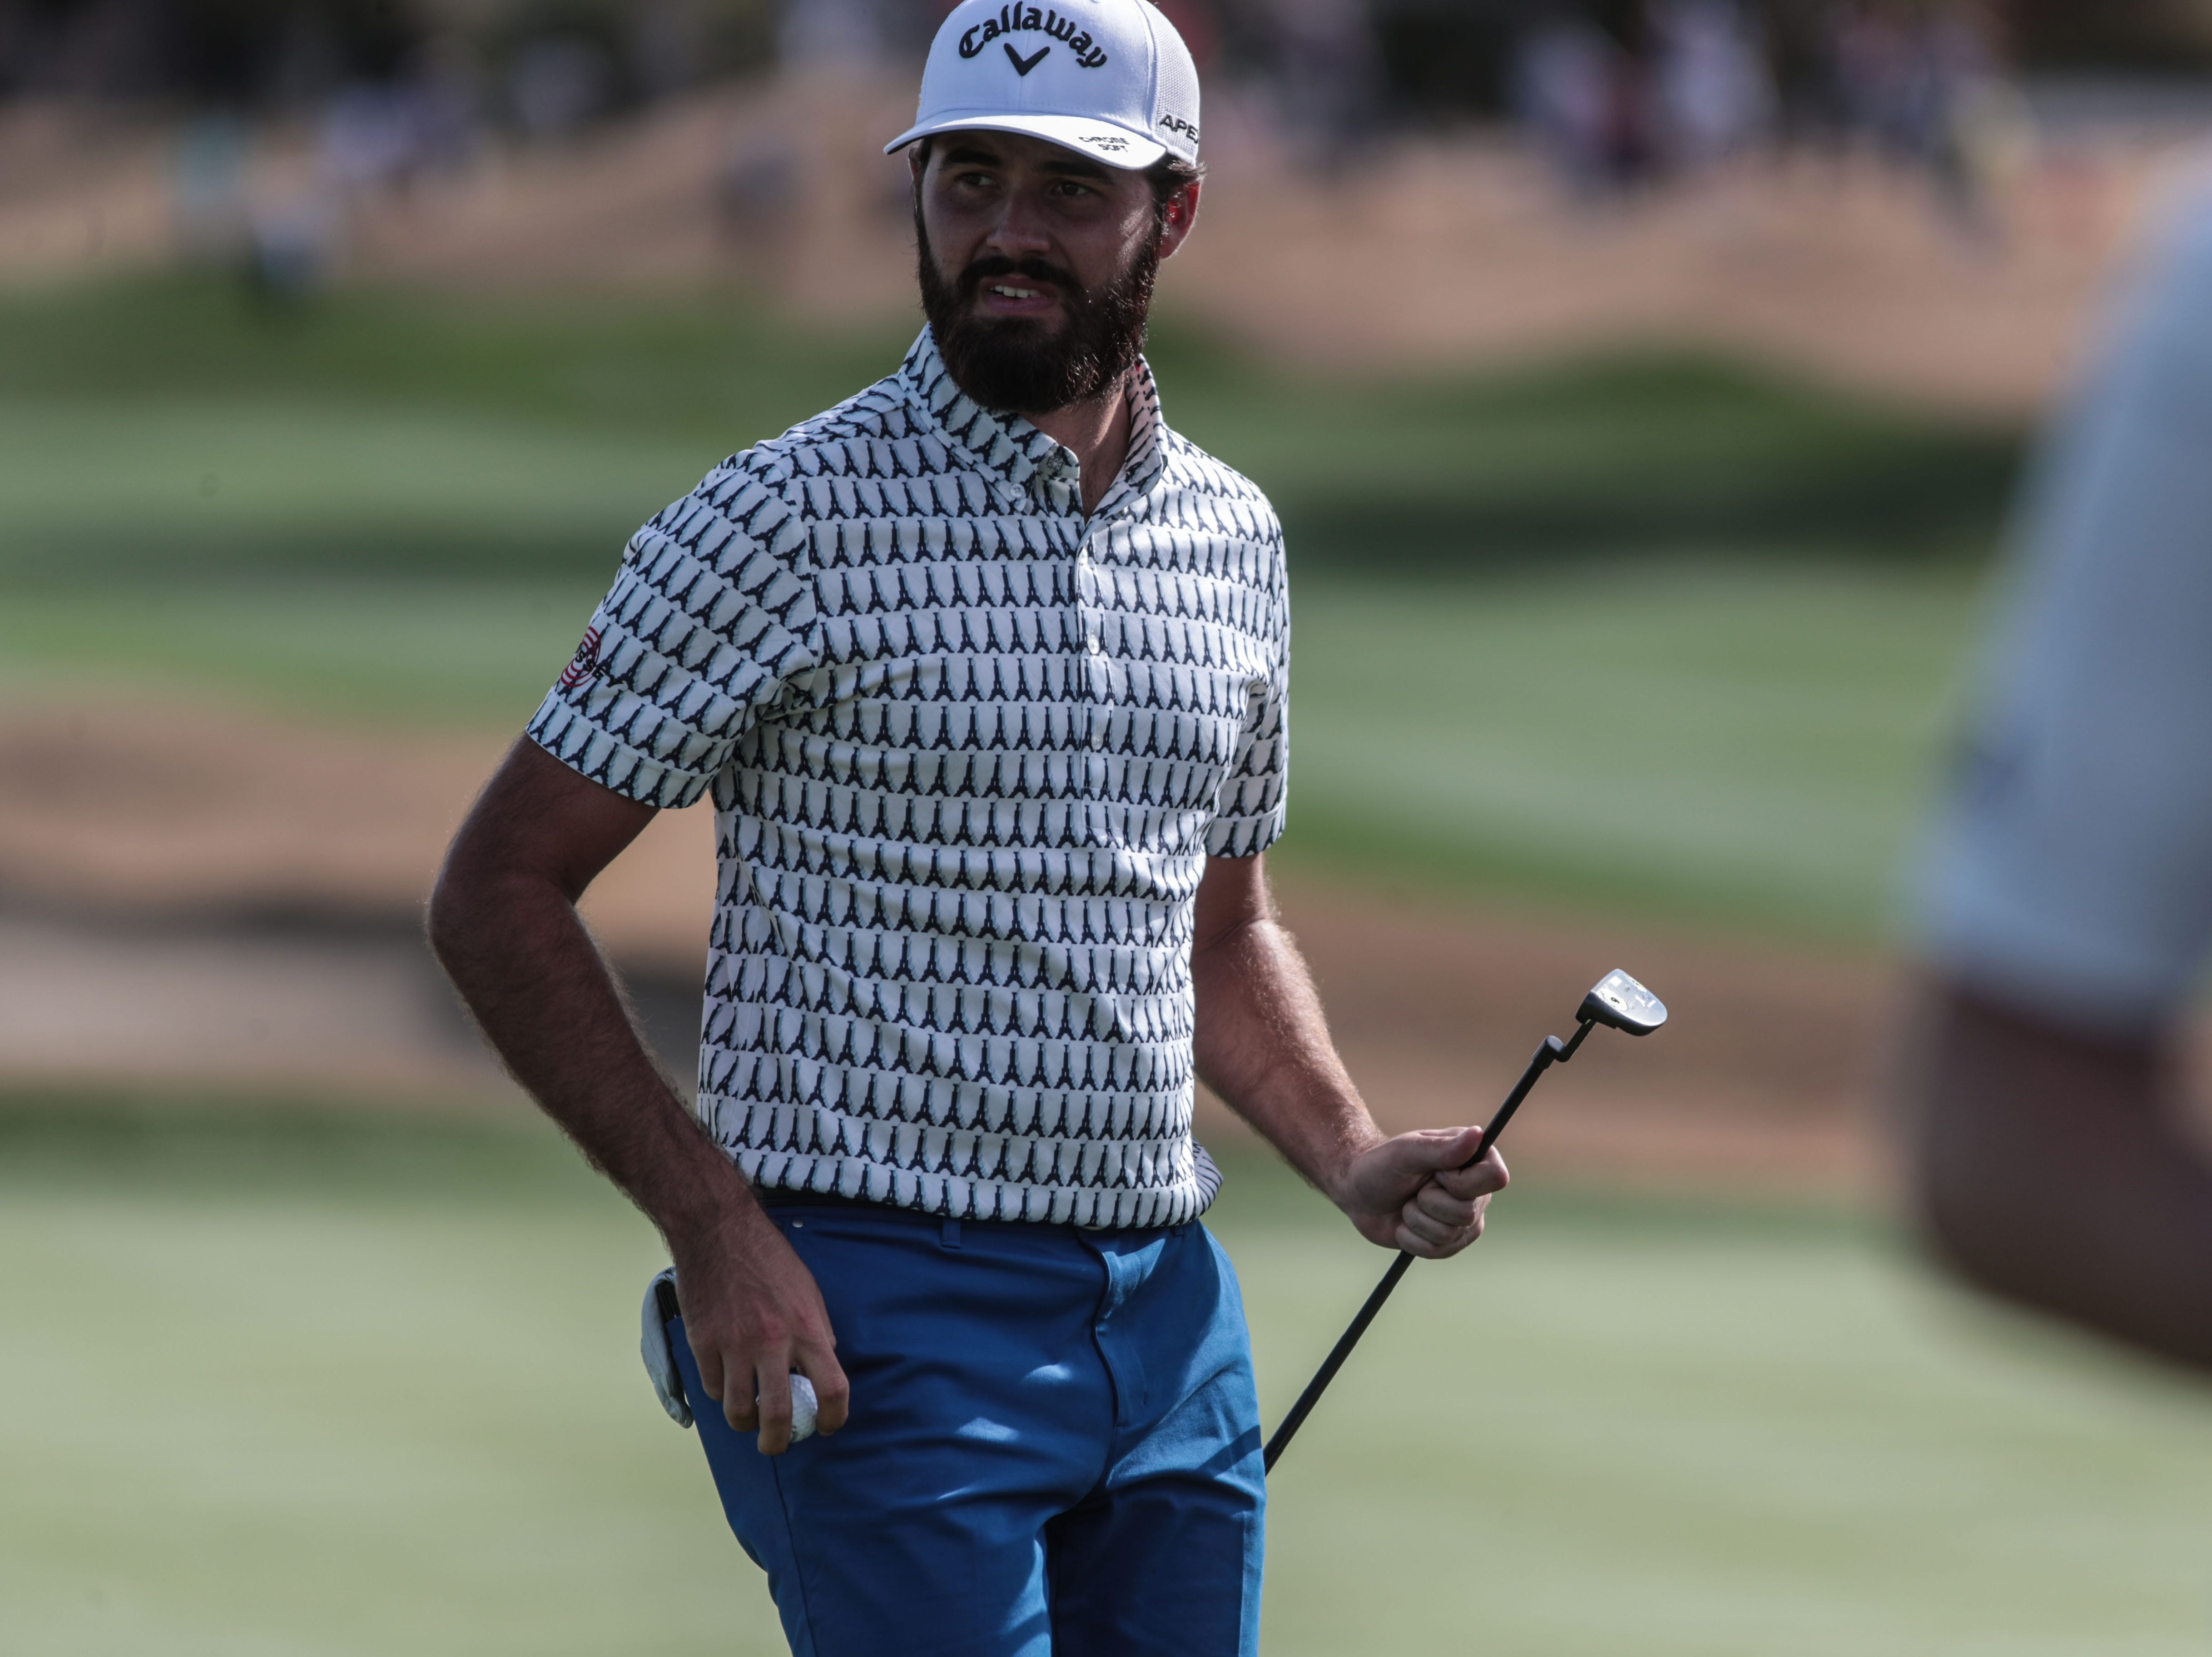 Curtis Luck on 18 on the Nicklaus Tournament Course at PGA West in La Quinta during the 2nd round of the Desert Classic on Friday, January 18, 2019.